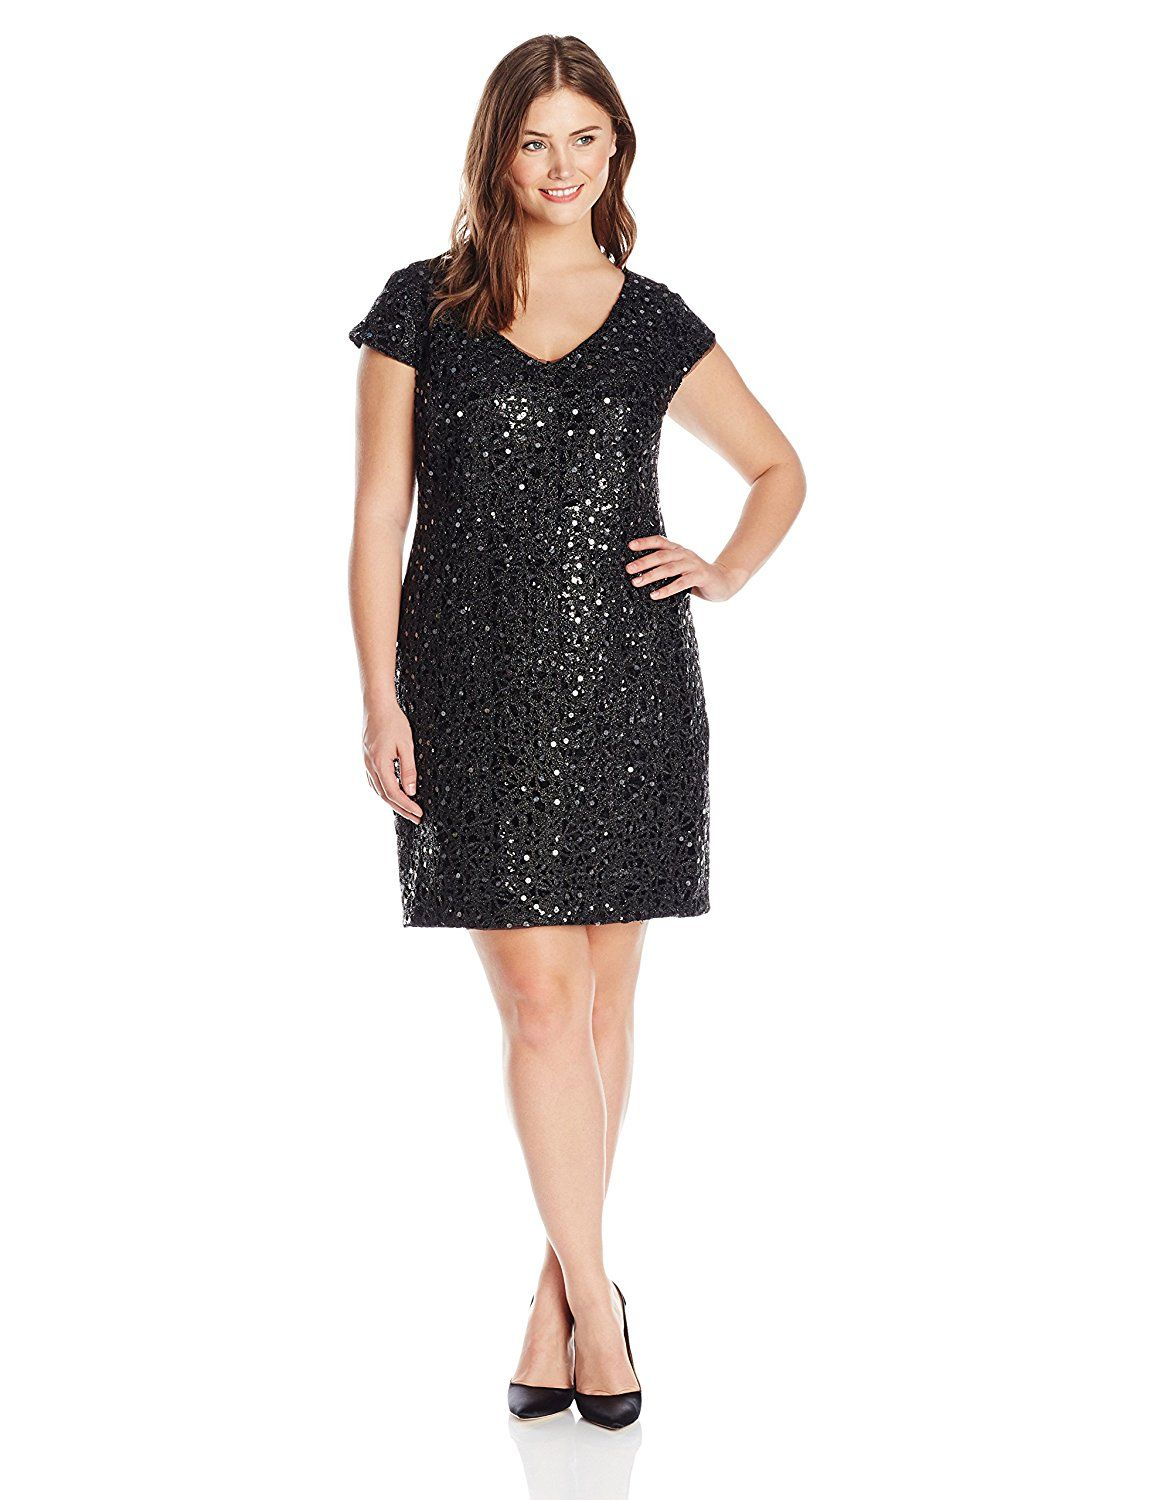 90922bac585 Amazon.com  Adrianna Papell Women s Plus-Size Cap Sleeve V-Neck Lace ...